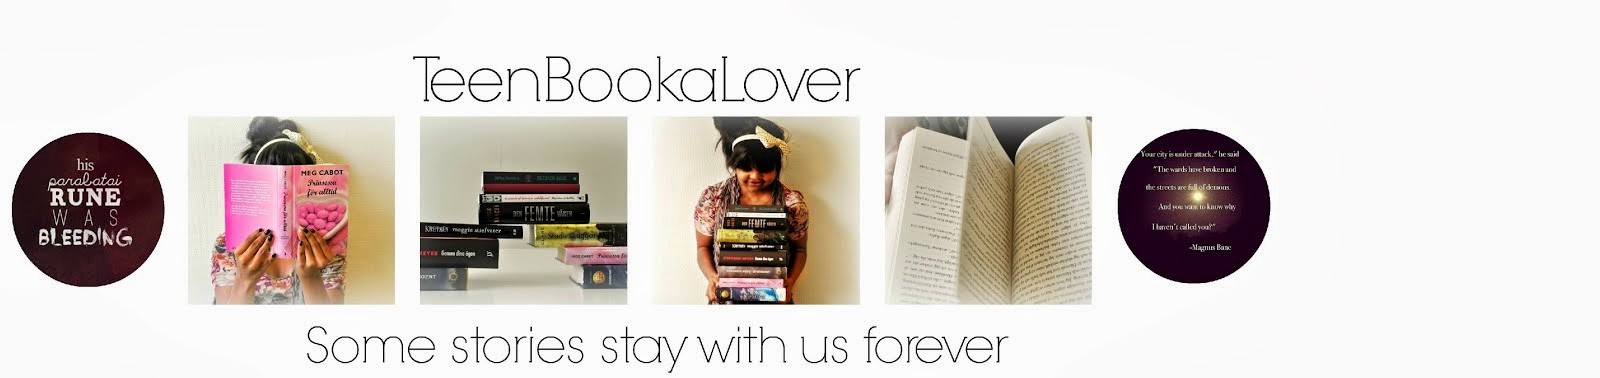 TeenBookaLover